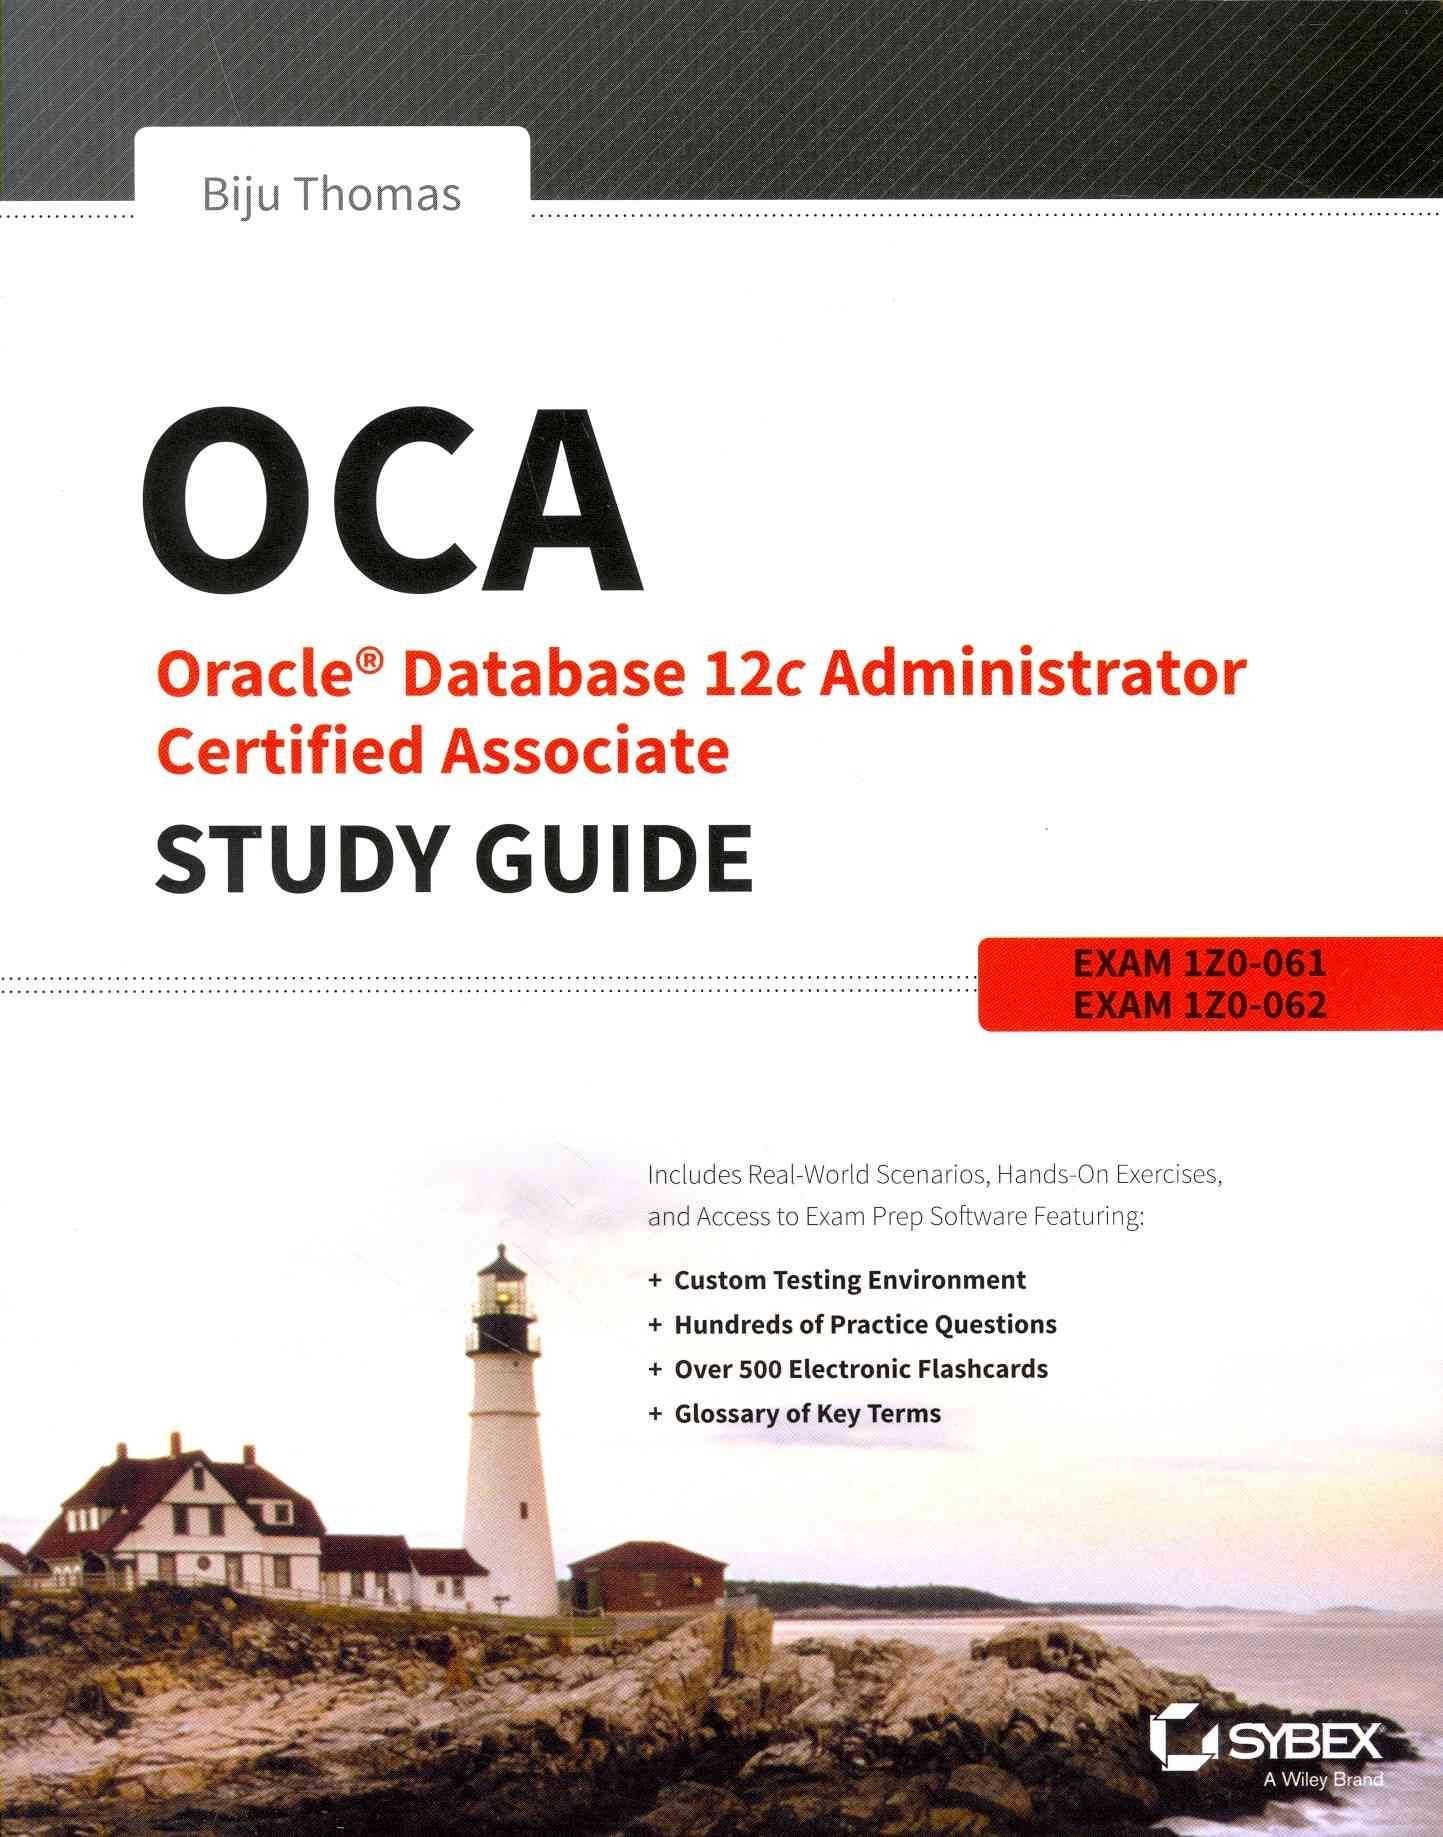 Meet Your Certification Guide On The Journey To Oracle Dba The